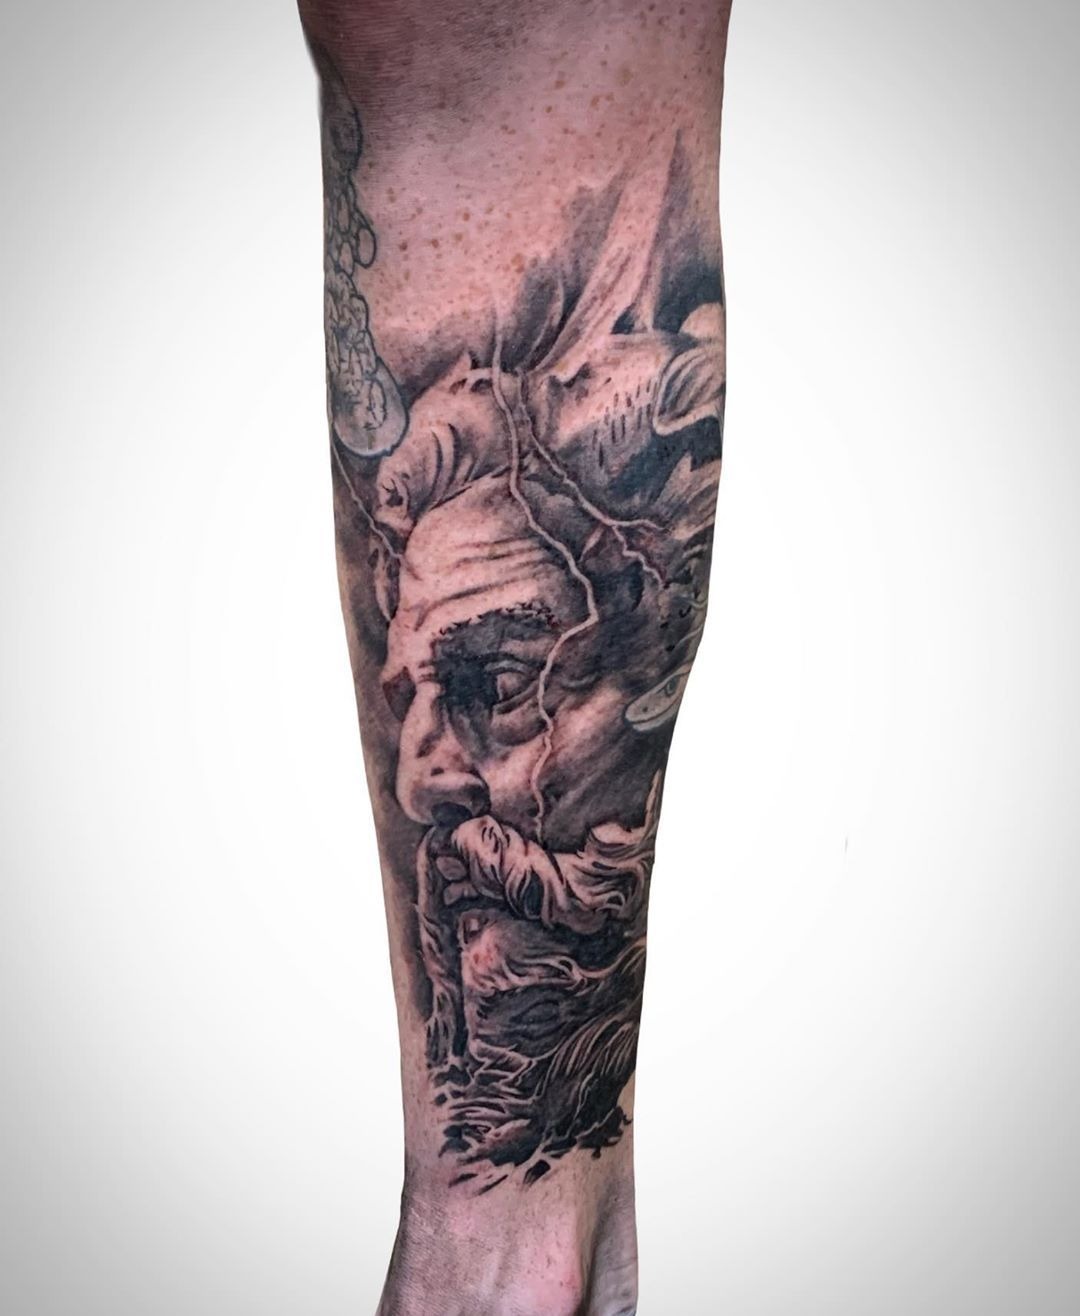 #zeustattoo #zues #greekgods #greek #tattoo #leg #legtattoo #legsleeve #greekmythology #greekgods #tattooartist #tattooart #realism #realistictattoo #photorealism #tat #tattooideas #tattoosleeve #tattoosofinstagram #tattoodesigns #lightning #storm #tattooed #tattoowork #tattoostudio #tattoolovers #tattooink #tattooinspiration